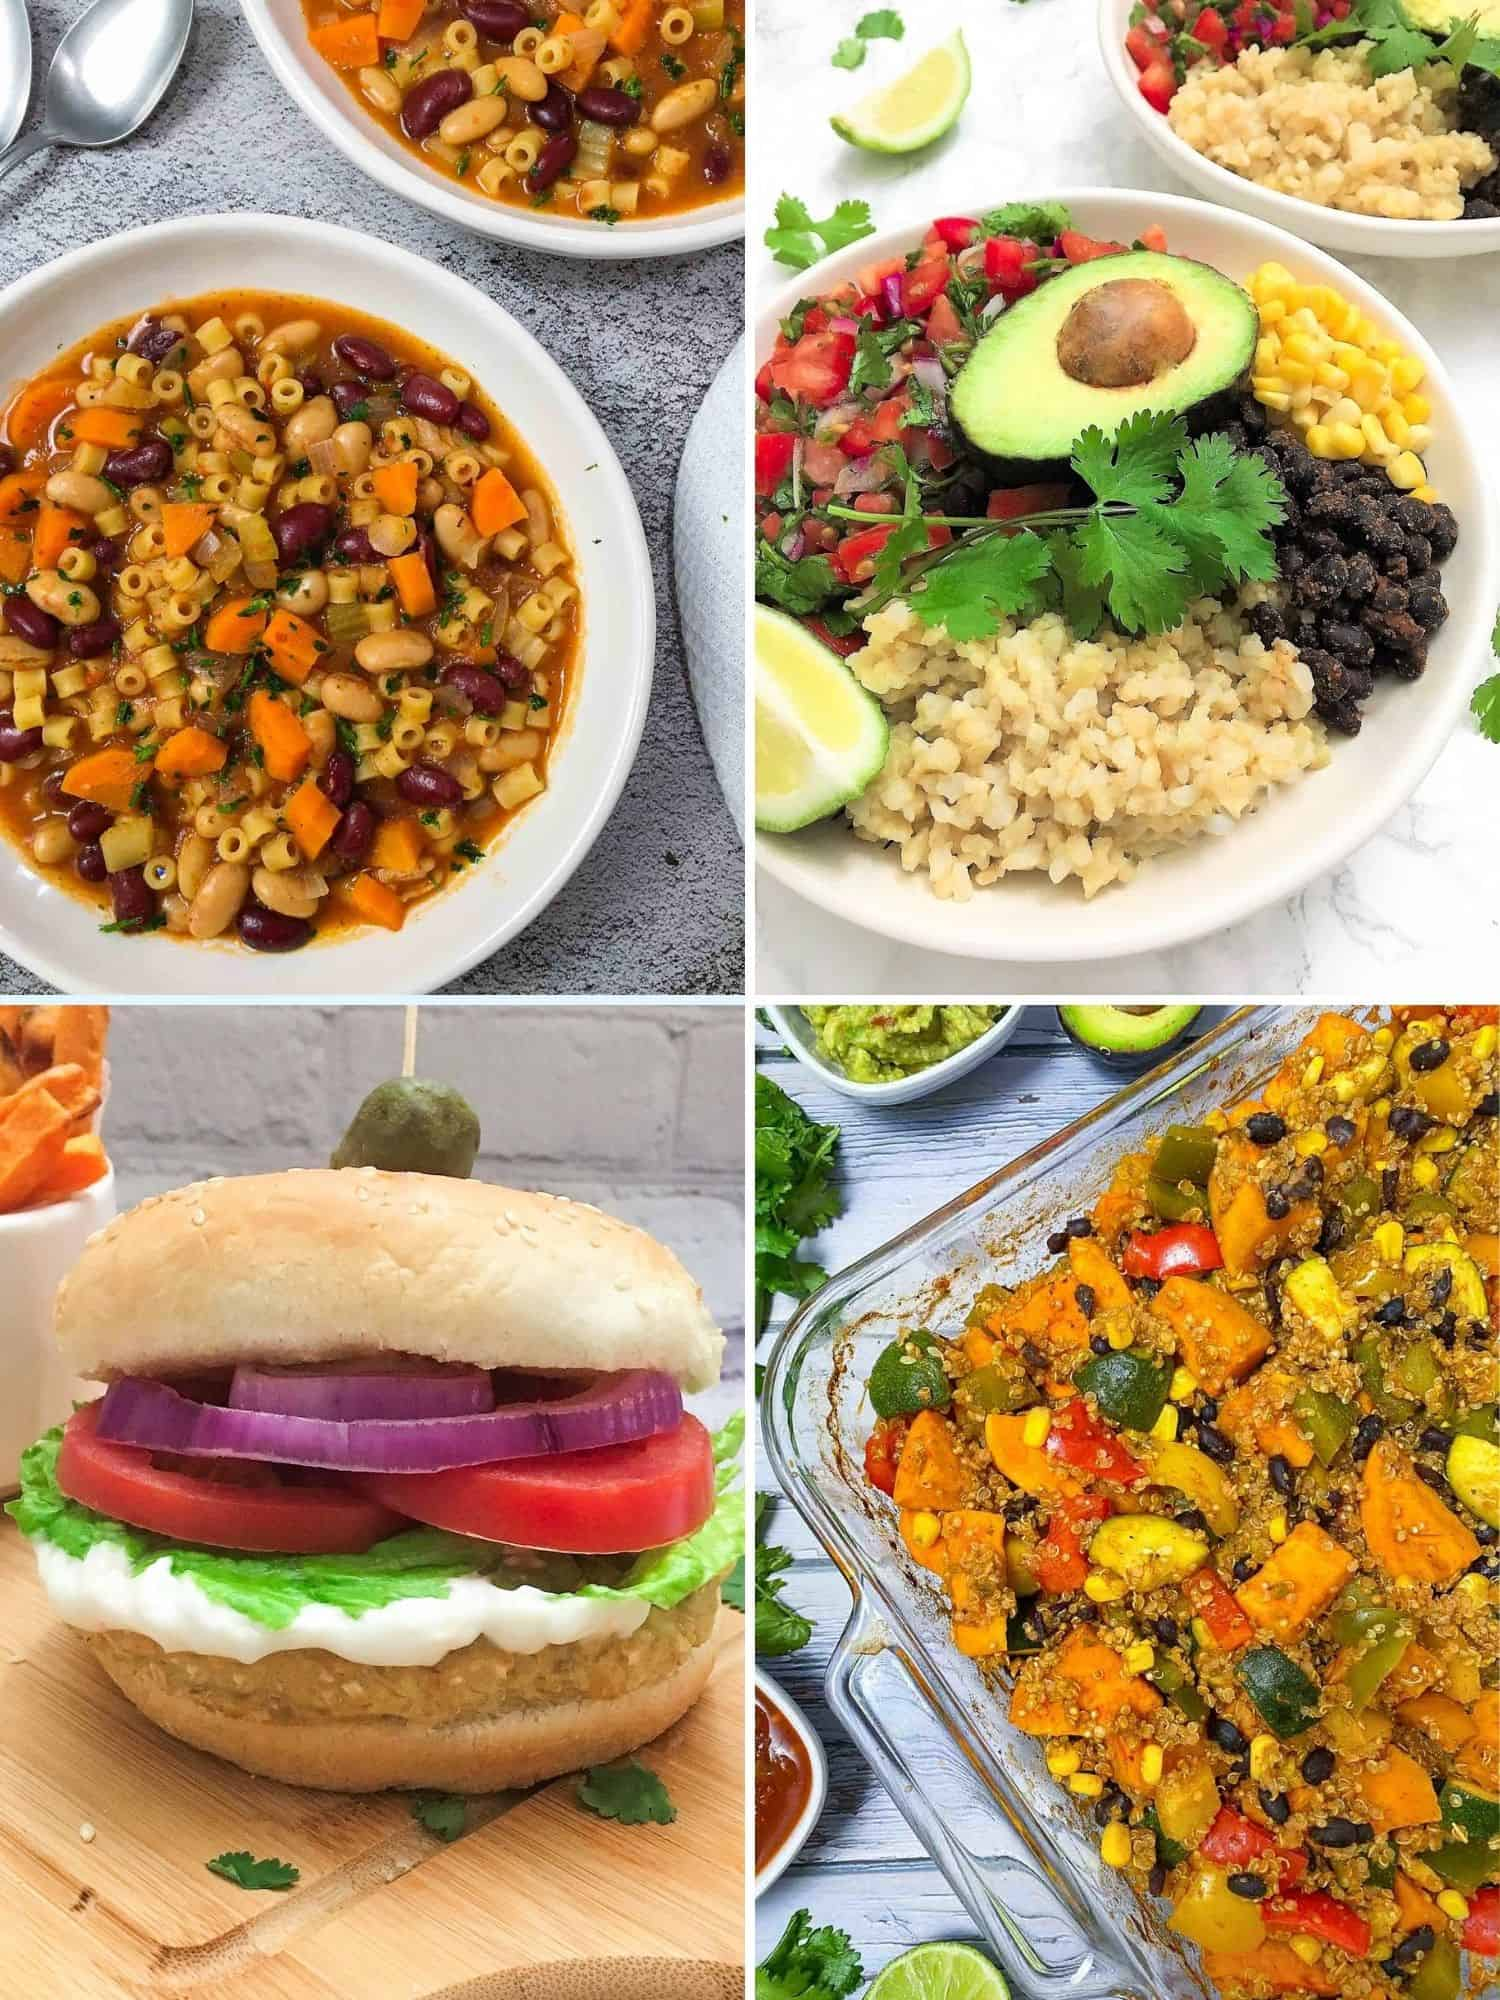 Collage of 4 vegan dinner recipes: pasta and beans, buddha bowl, burger, casserole.